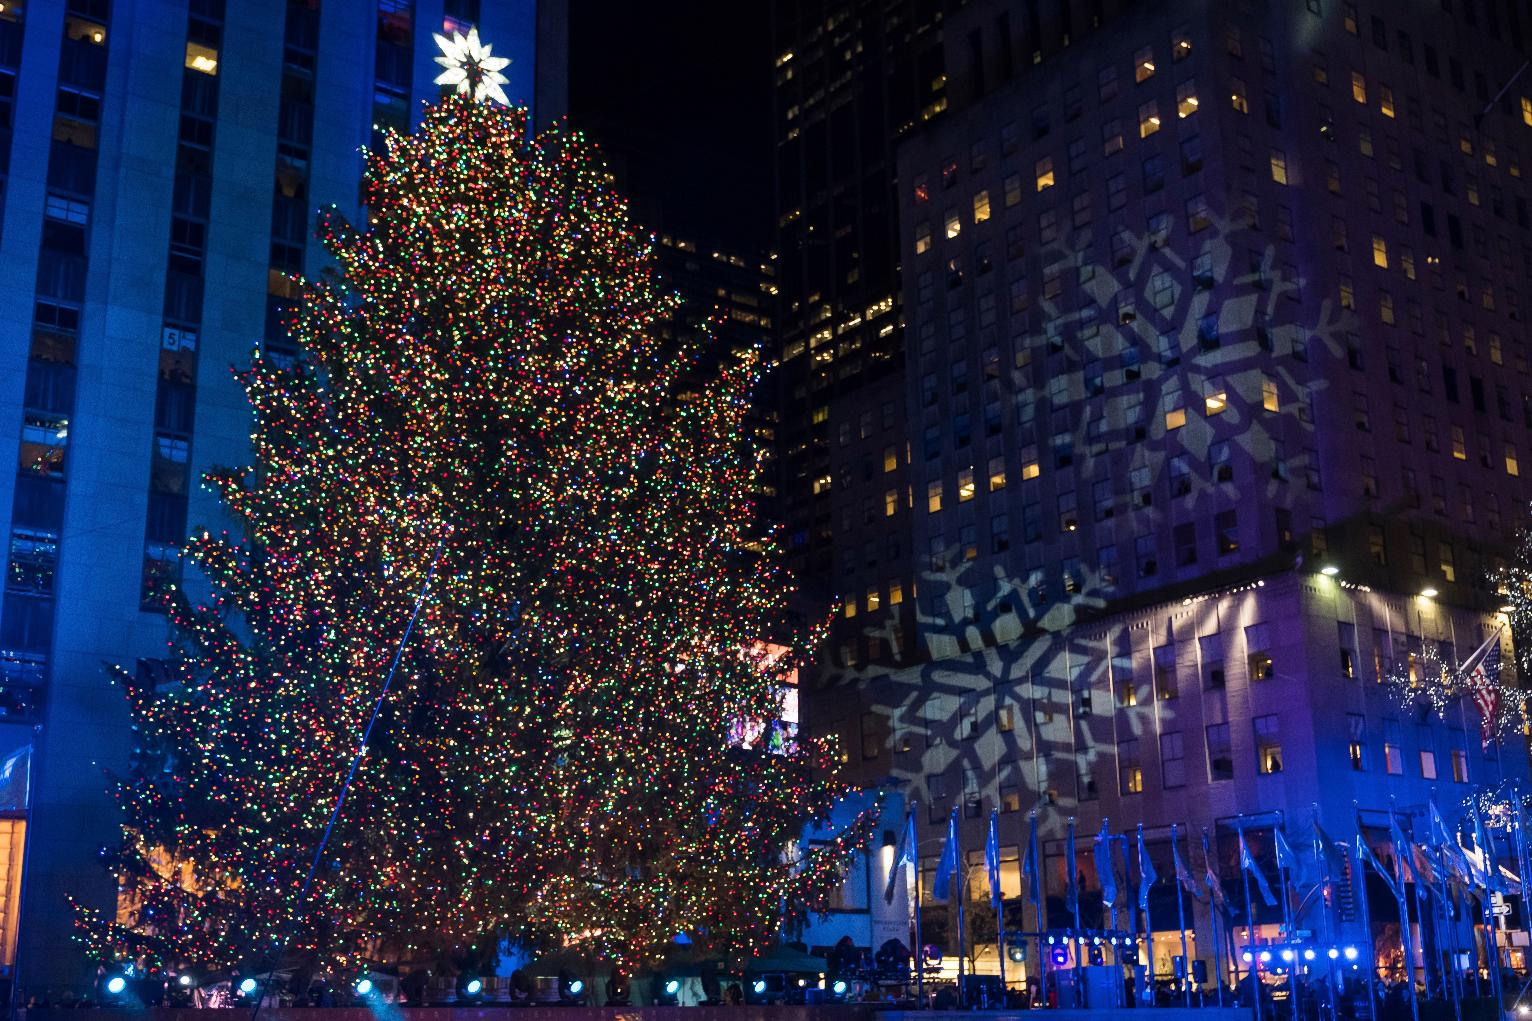 Rockefeller Christmas Tree Lighting Attracts Thousands | New York News | US News & Rockefeller Christmas Tree Lighting Attracts Thousands | New York ... azcodes.com